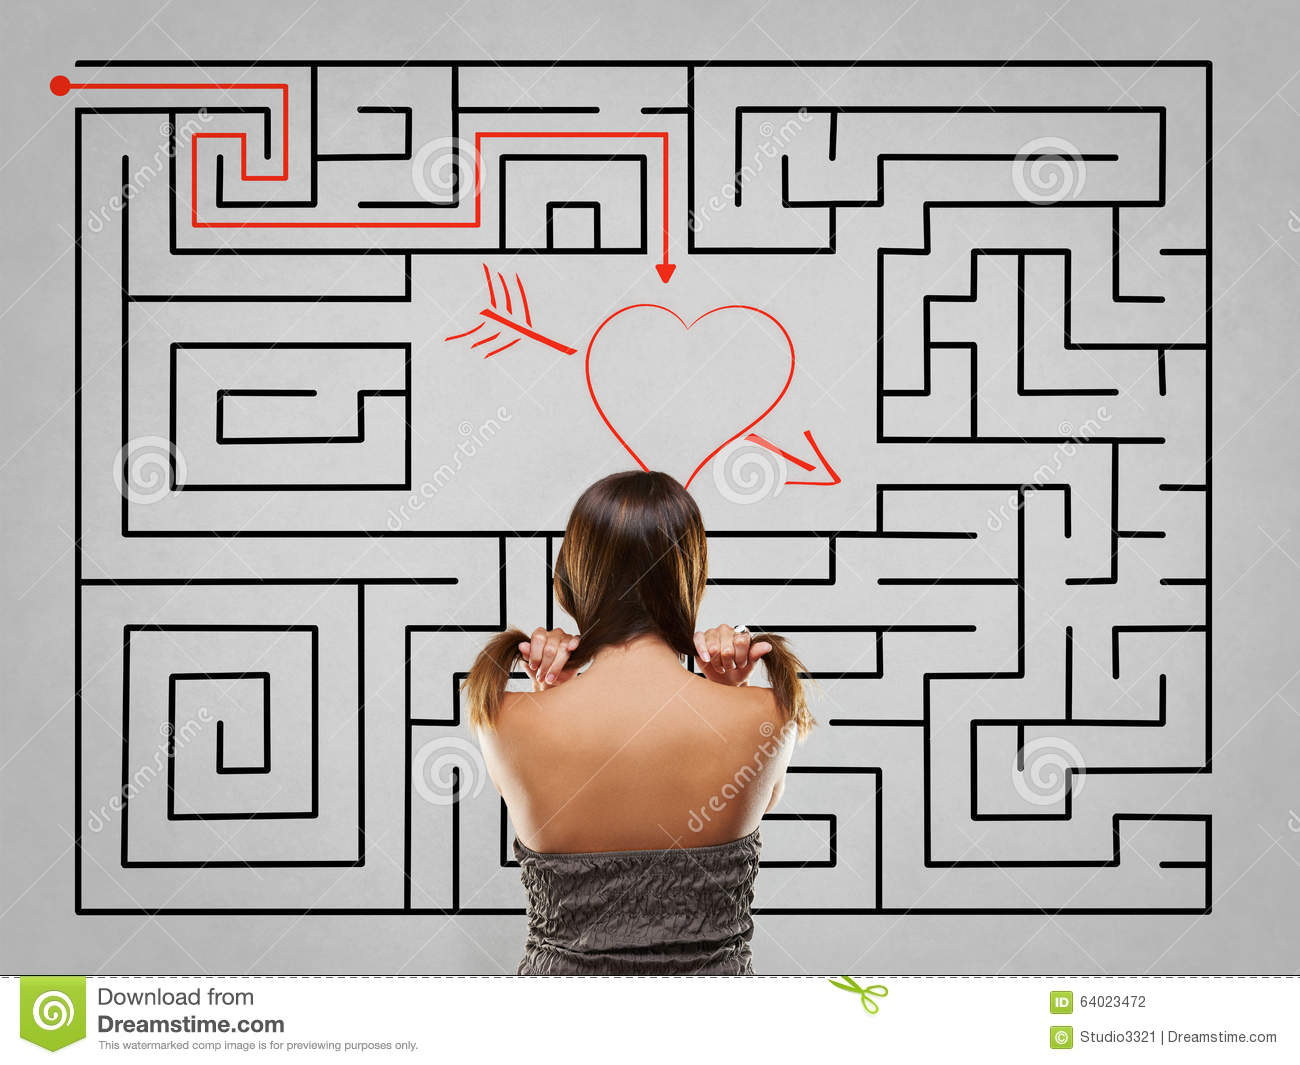 woman pulling hair in front of labyrinth with love solution royalty free stock image. Black Bedroom Furniture Sets. Home Design Ideas